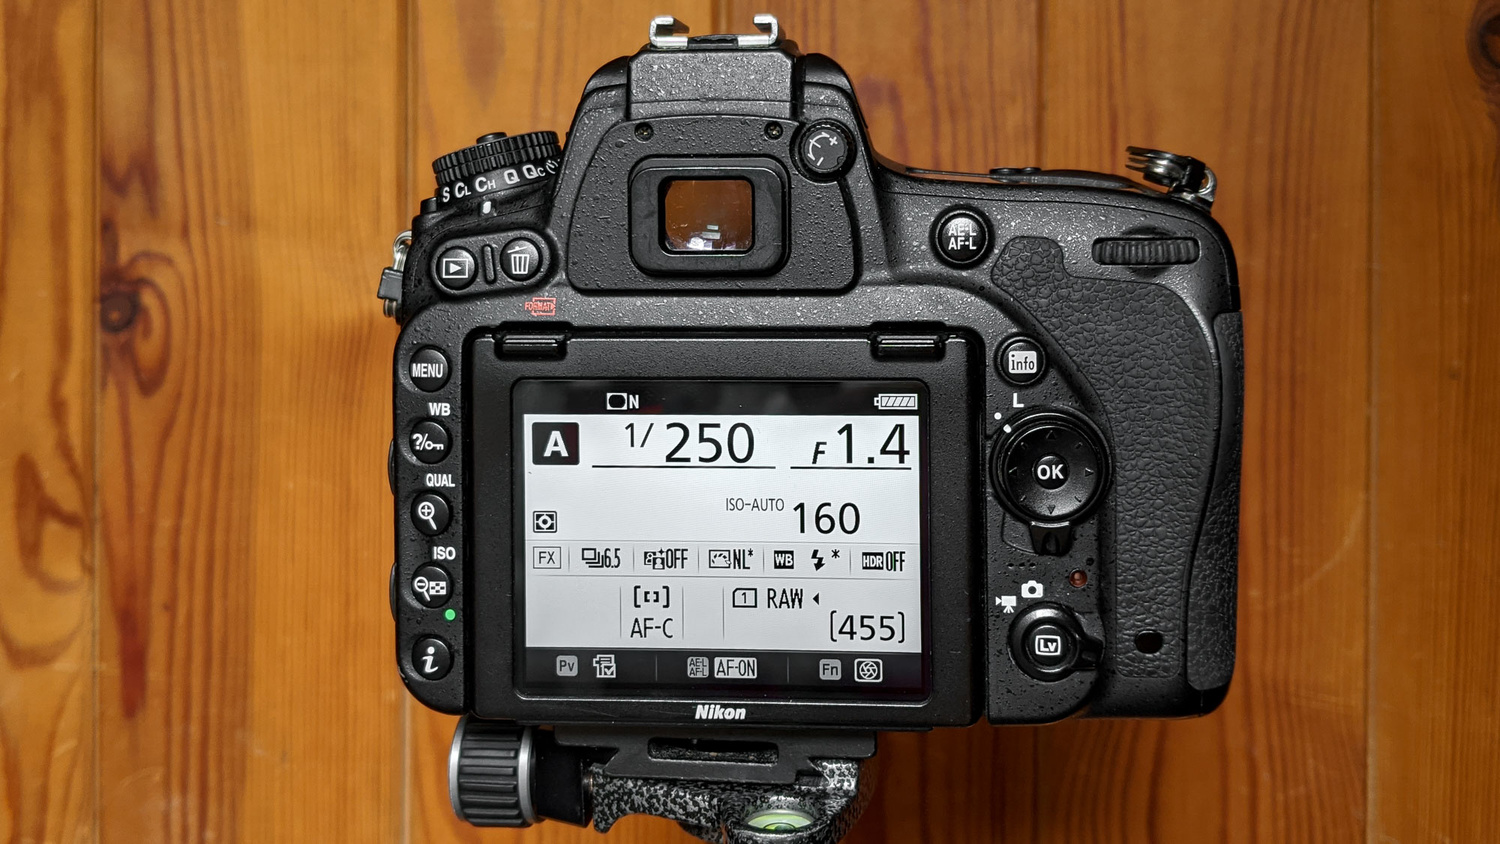 Shoot in aperture priority mode